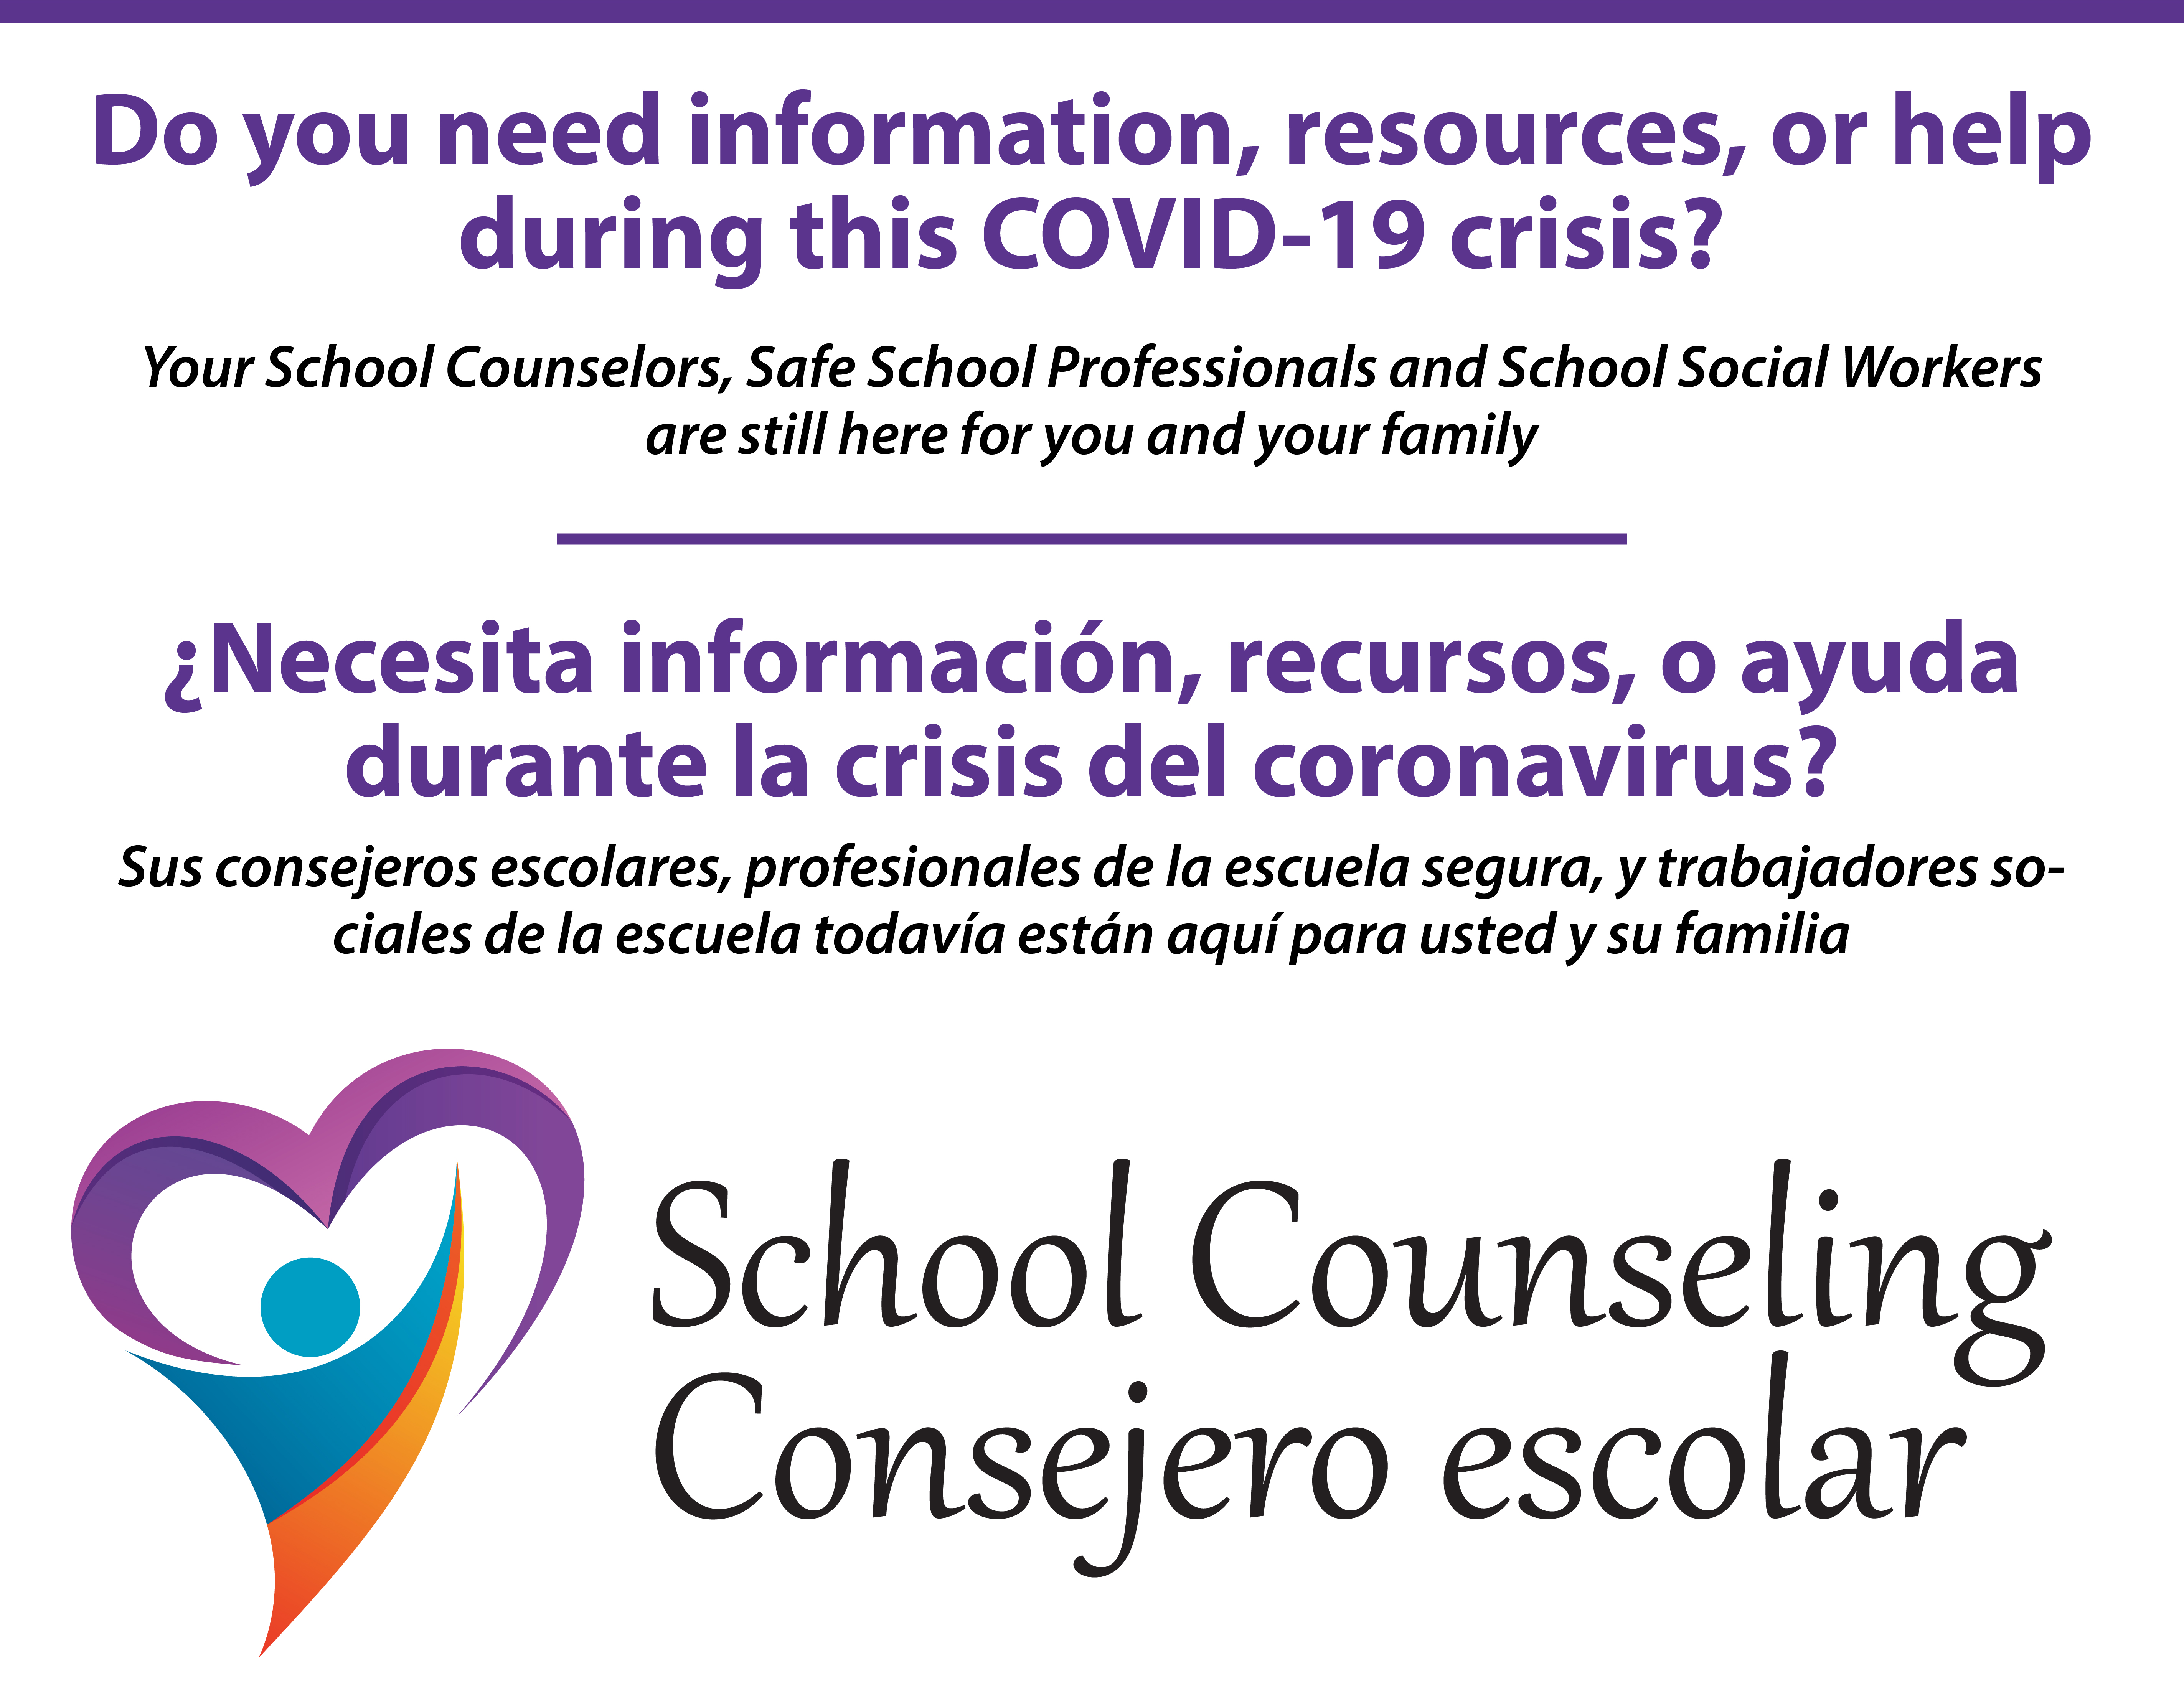 Contact your School Counselor if you need information, resources, or help during this COVID-19 crisis.